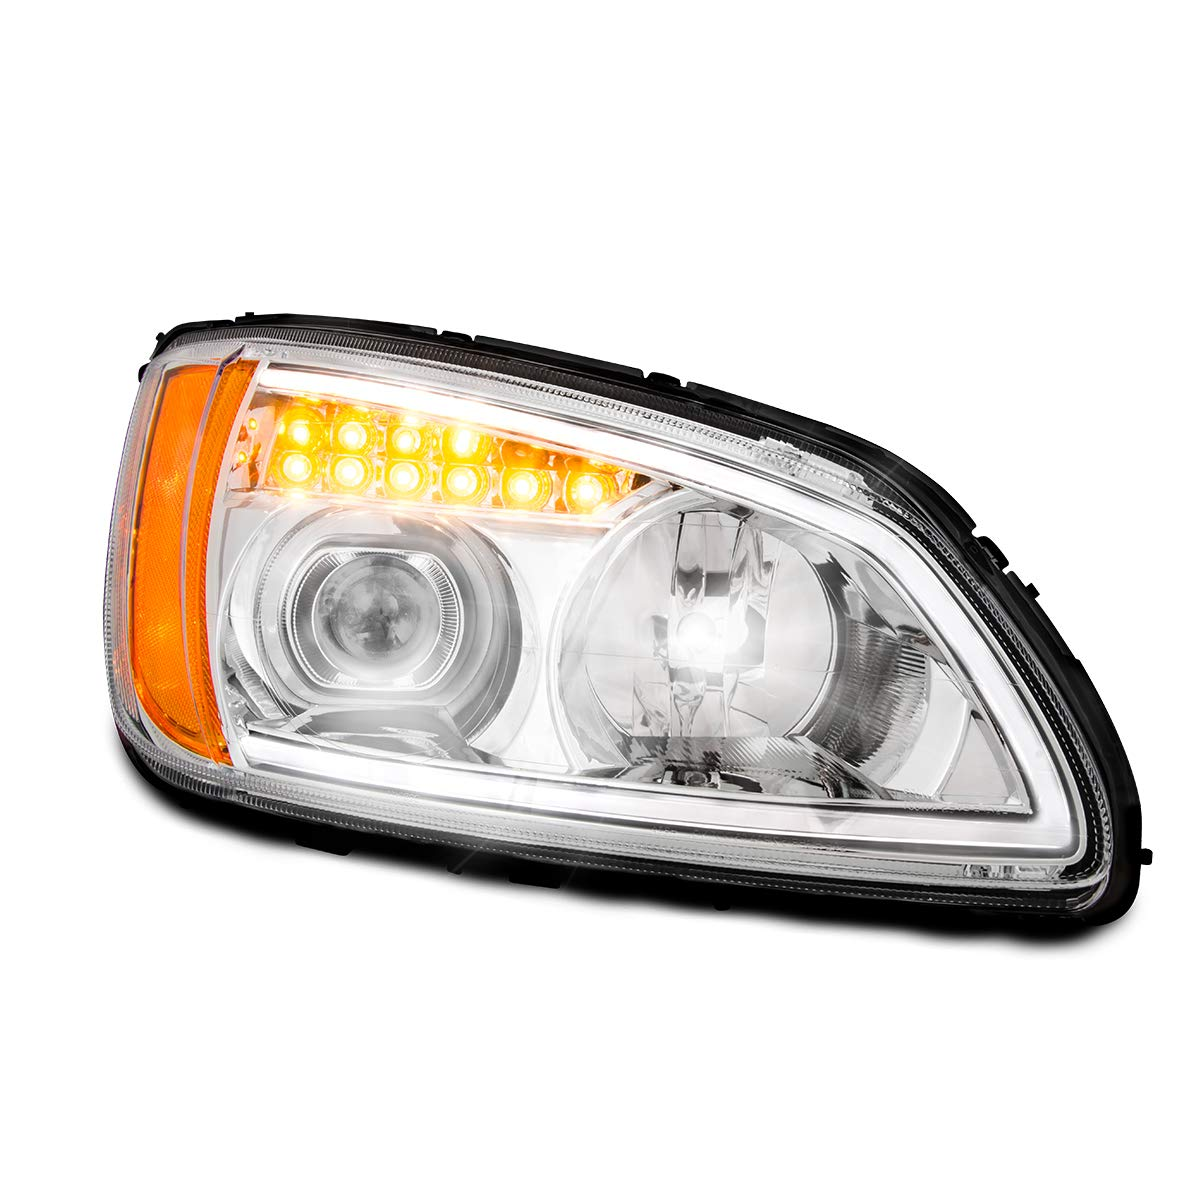 GG Grand General 89441 Headlight (Clear Projection with LED Turn/Position, P/S,Kw T660 08+) by GG Grand General